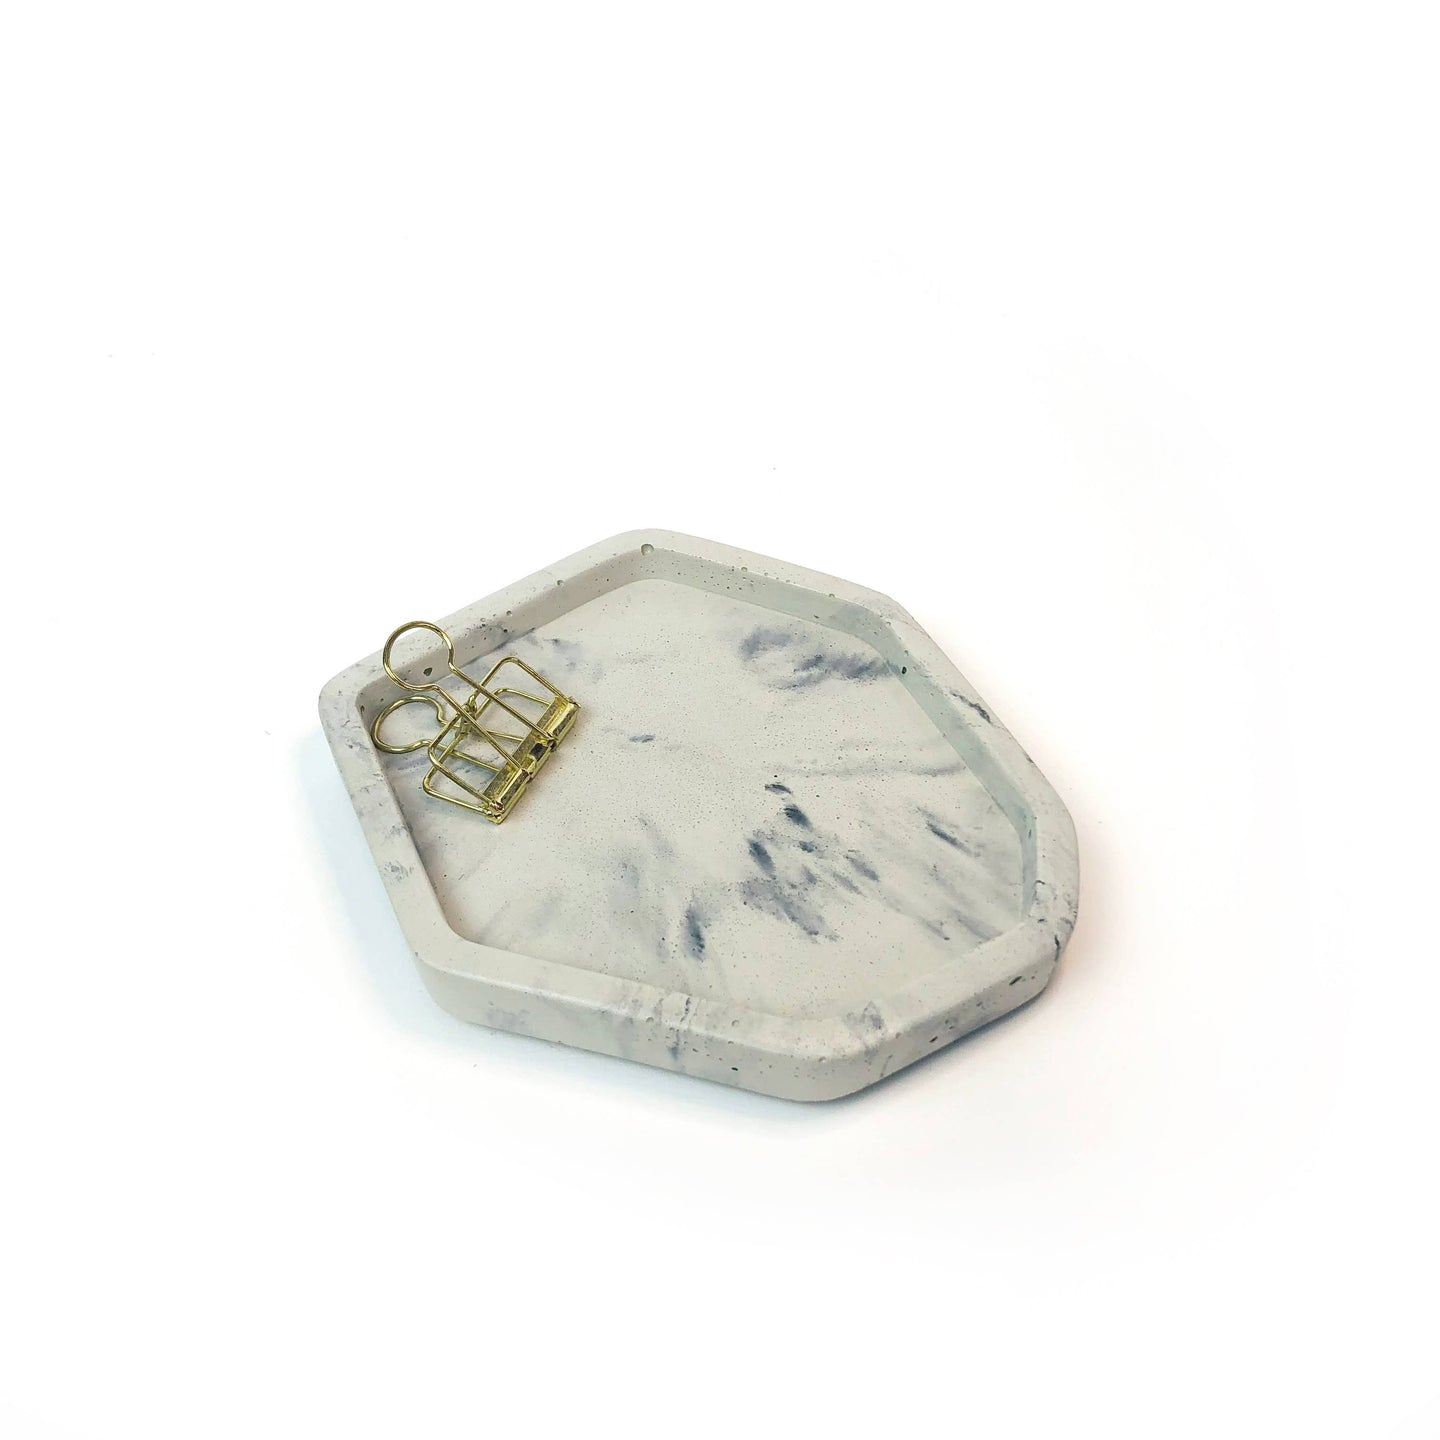 Known Goods Co. - Small Concrete Catch All Tray - Light Marble